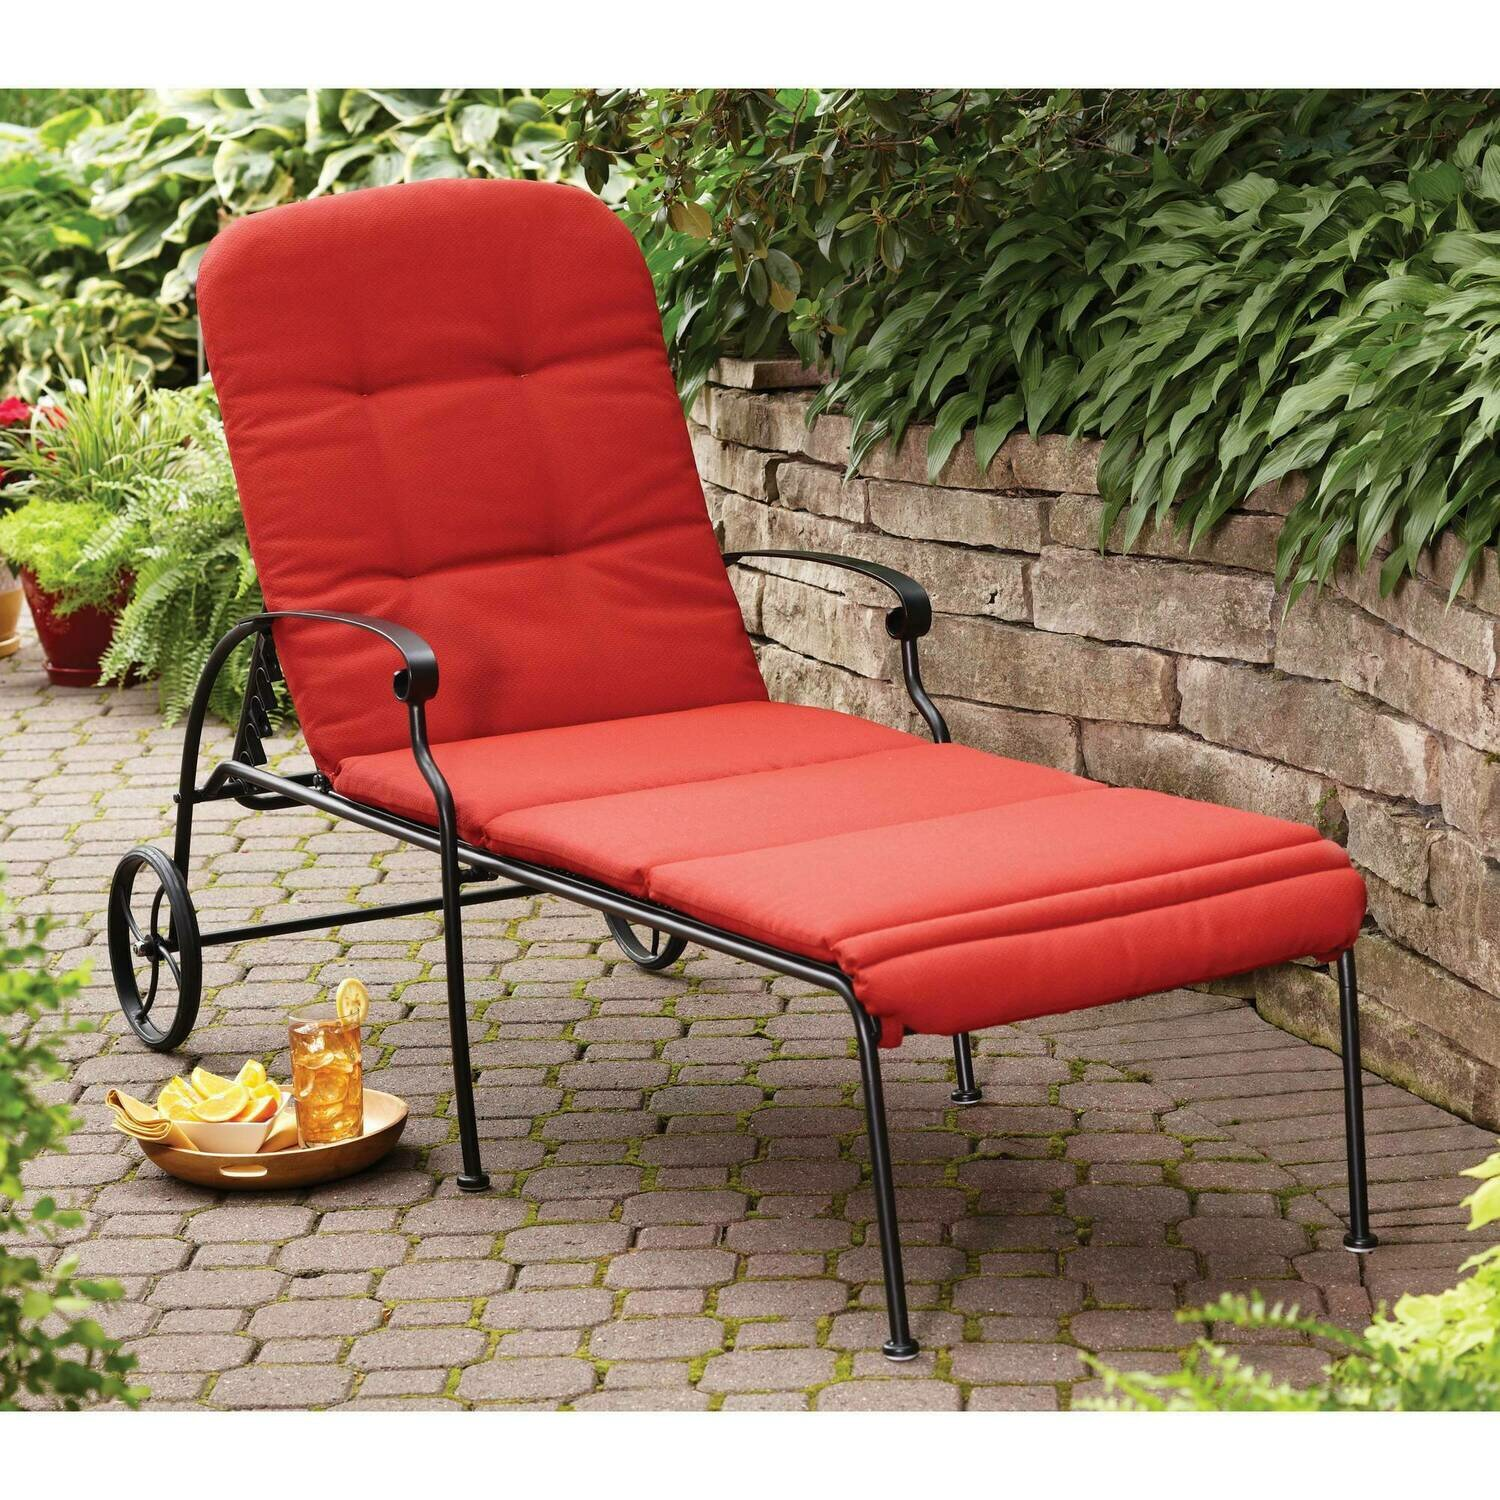 Clayton Court Chaise Lounge with Wheels, Red